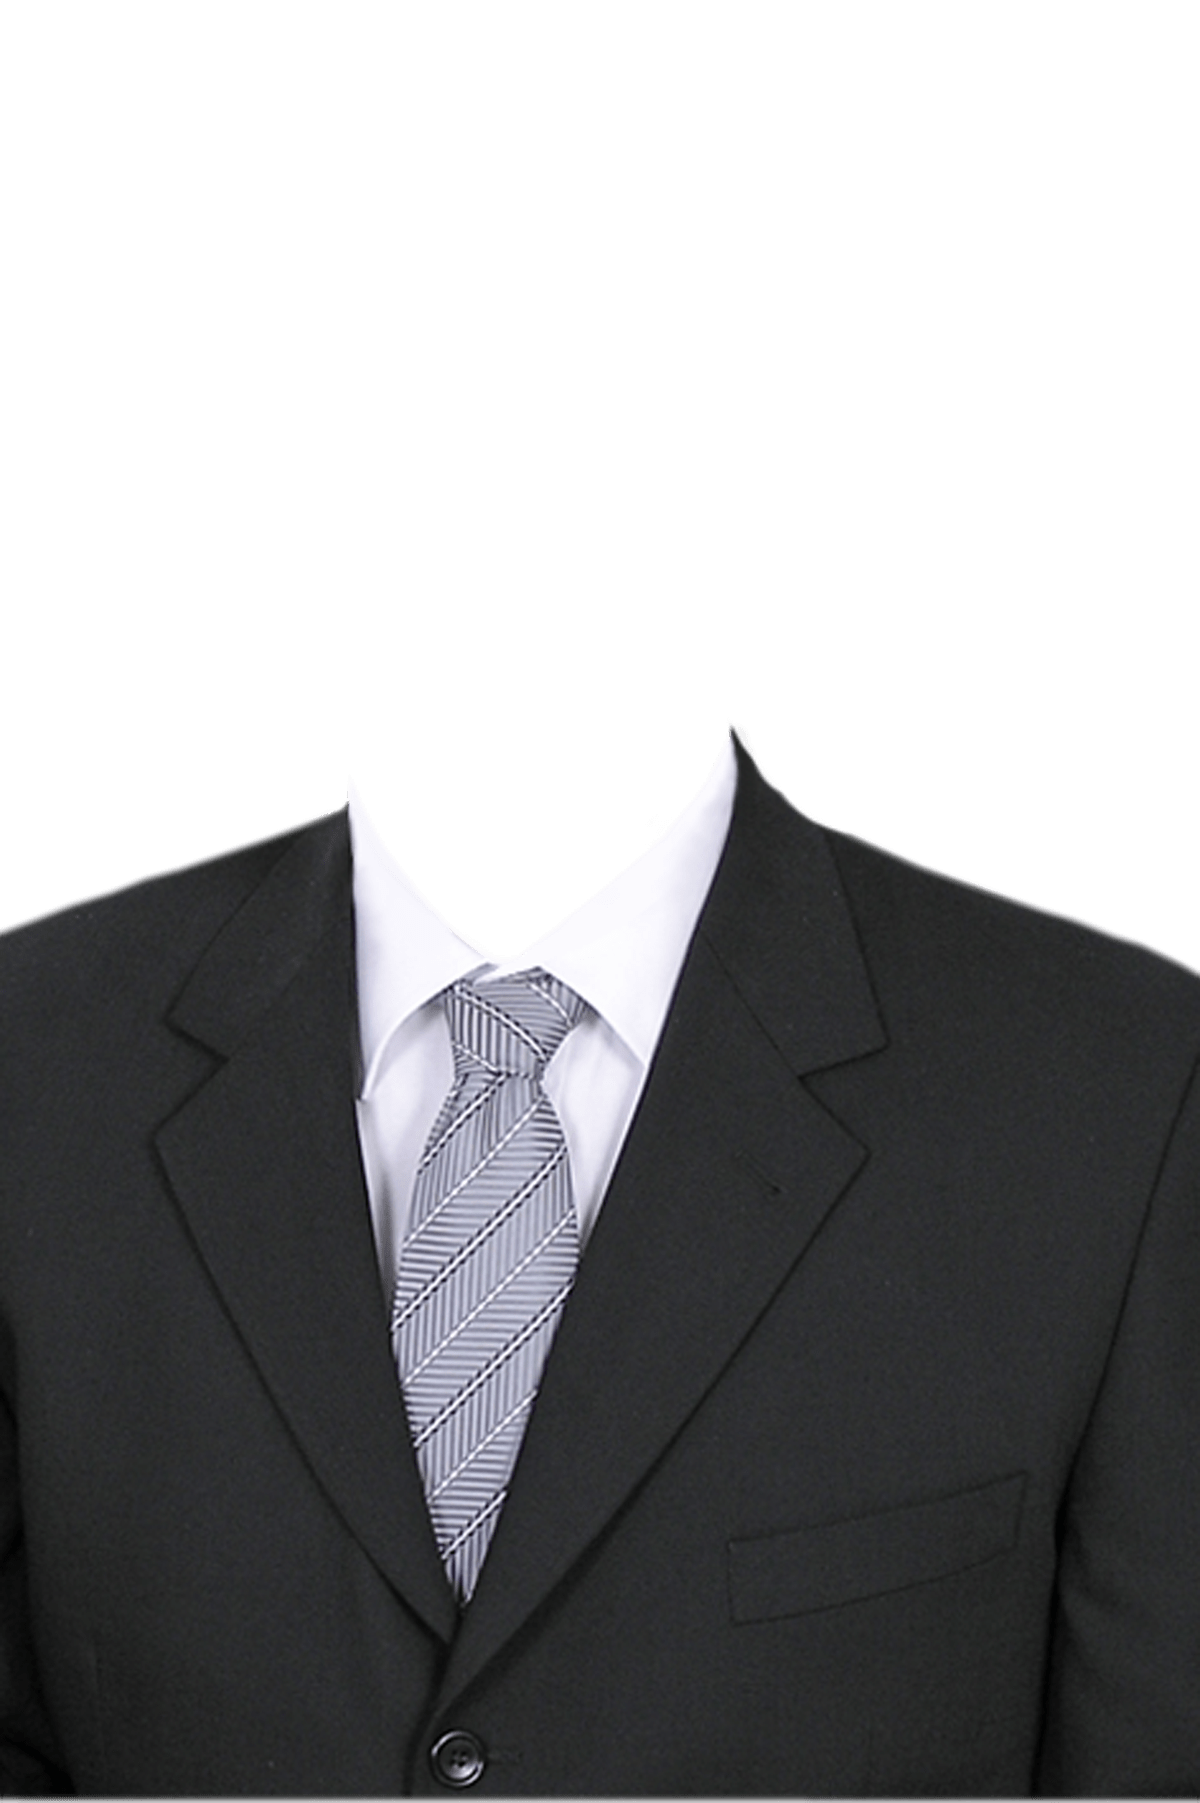 Suit clipart recruitment. Template png boat jeremyeaton